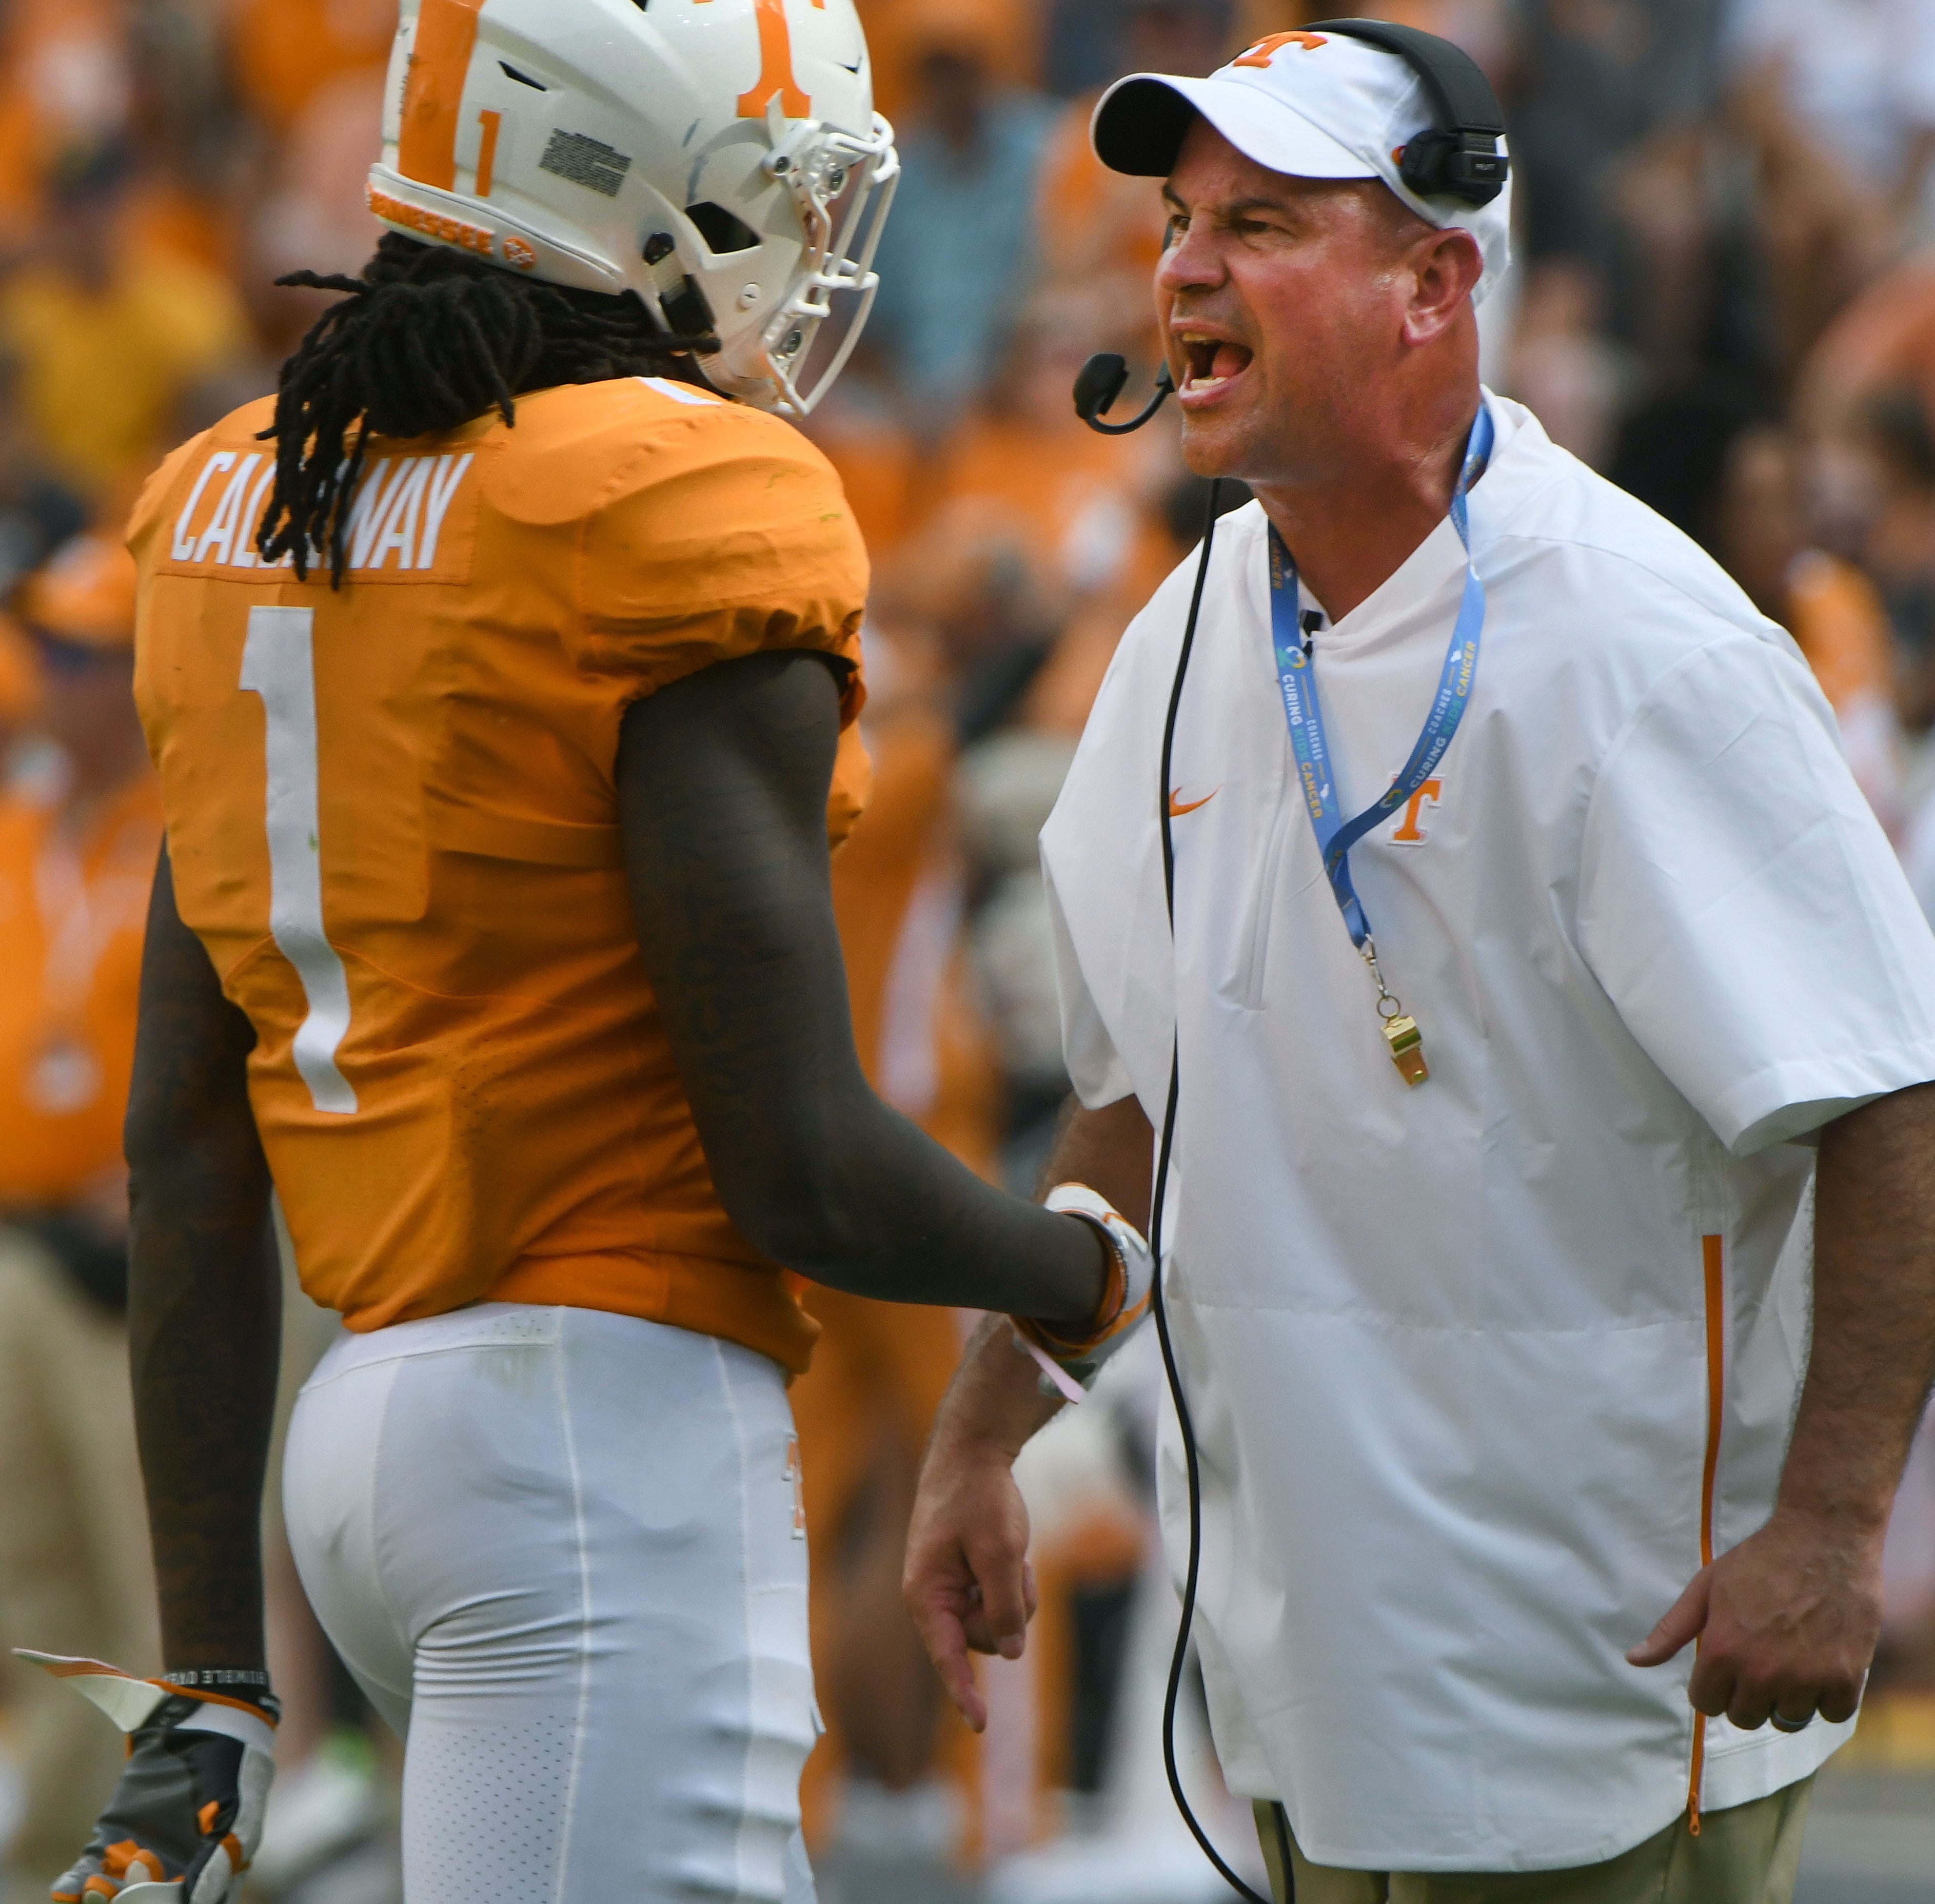 Mike Strange: A look back at 'Group of Five' struggles, misses for UT Vols